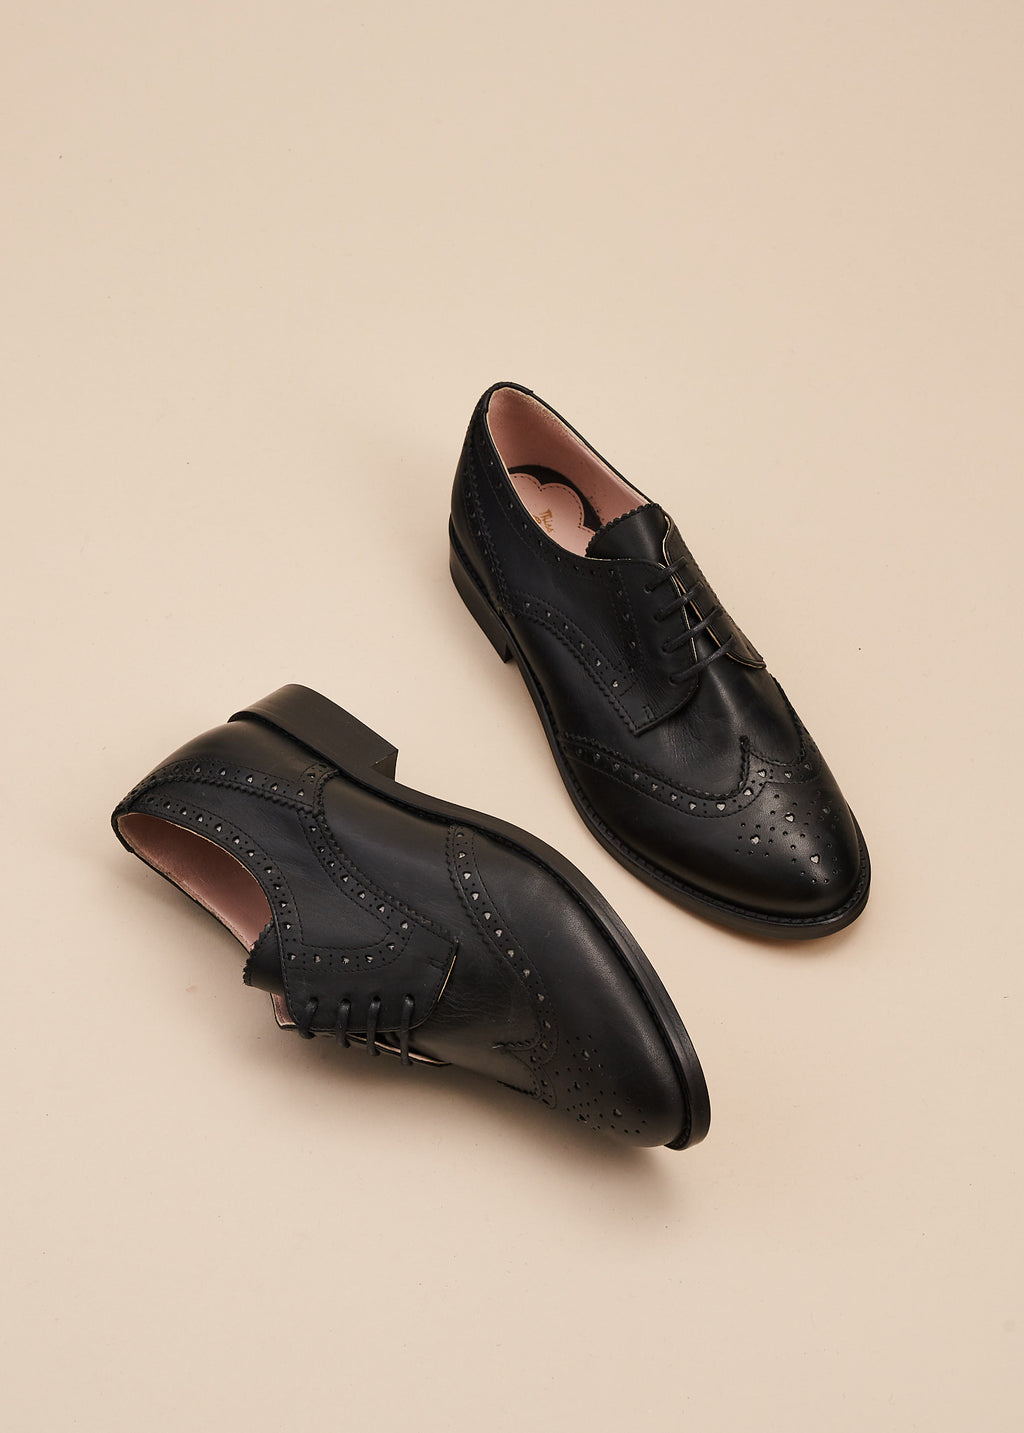 Audrey Black Lace-Up Brogue- LAST FEW PAIRS!